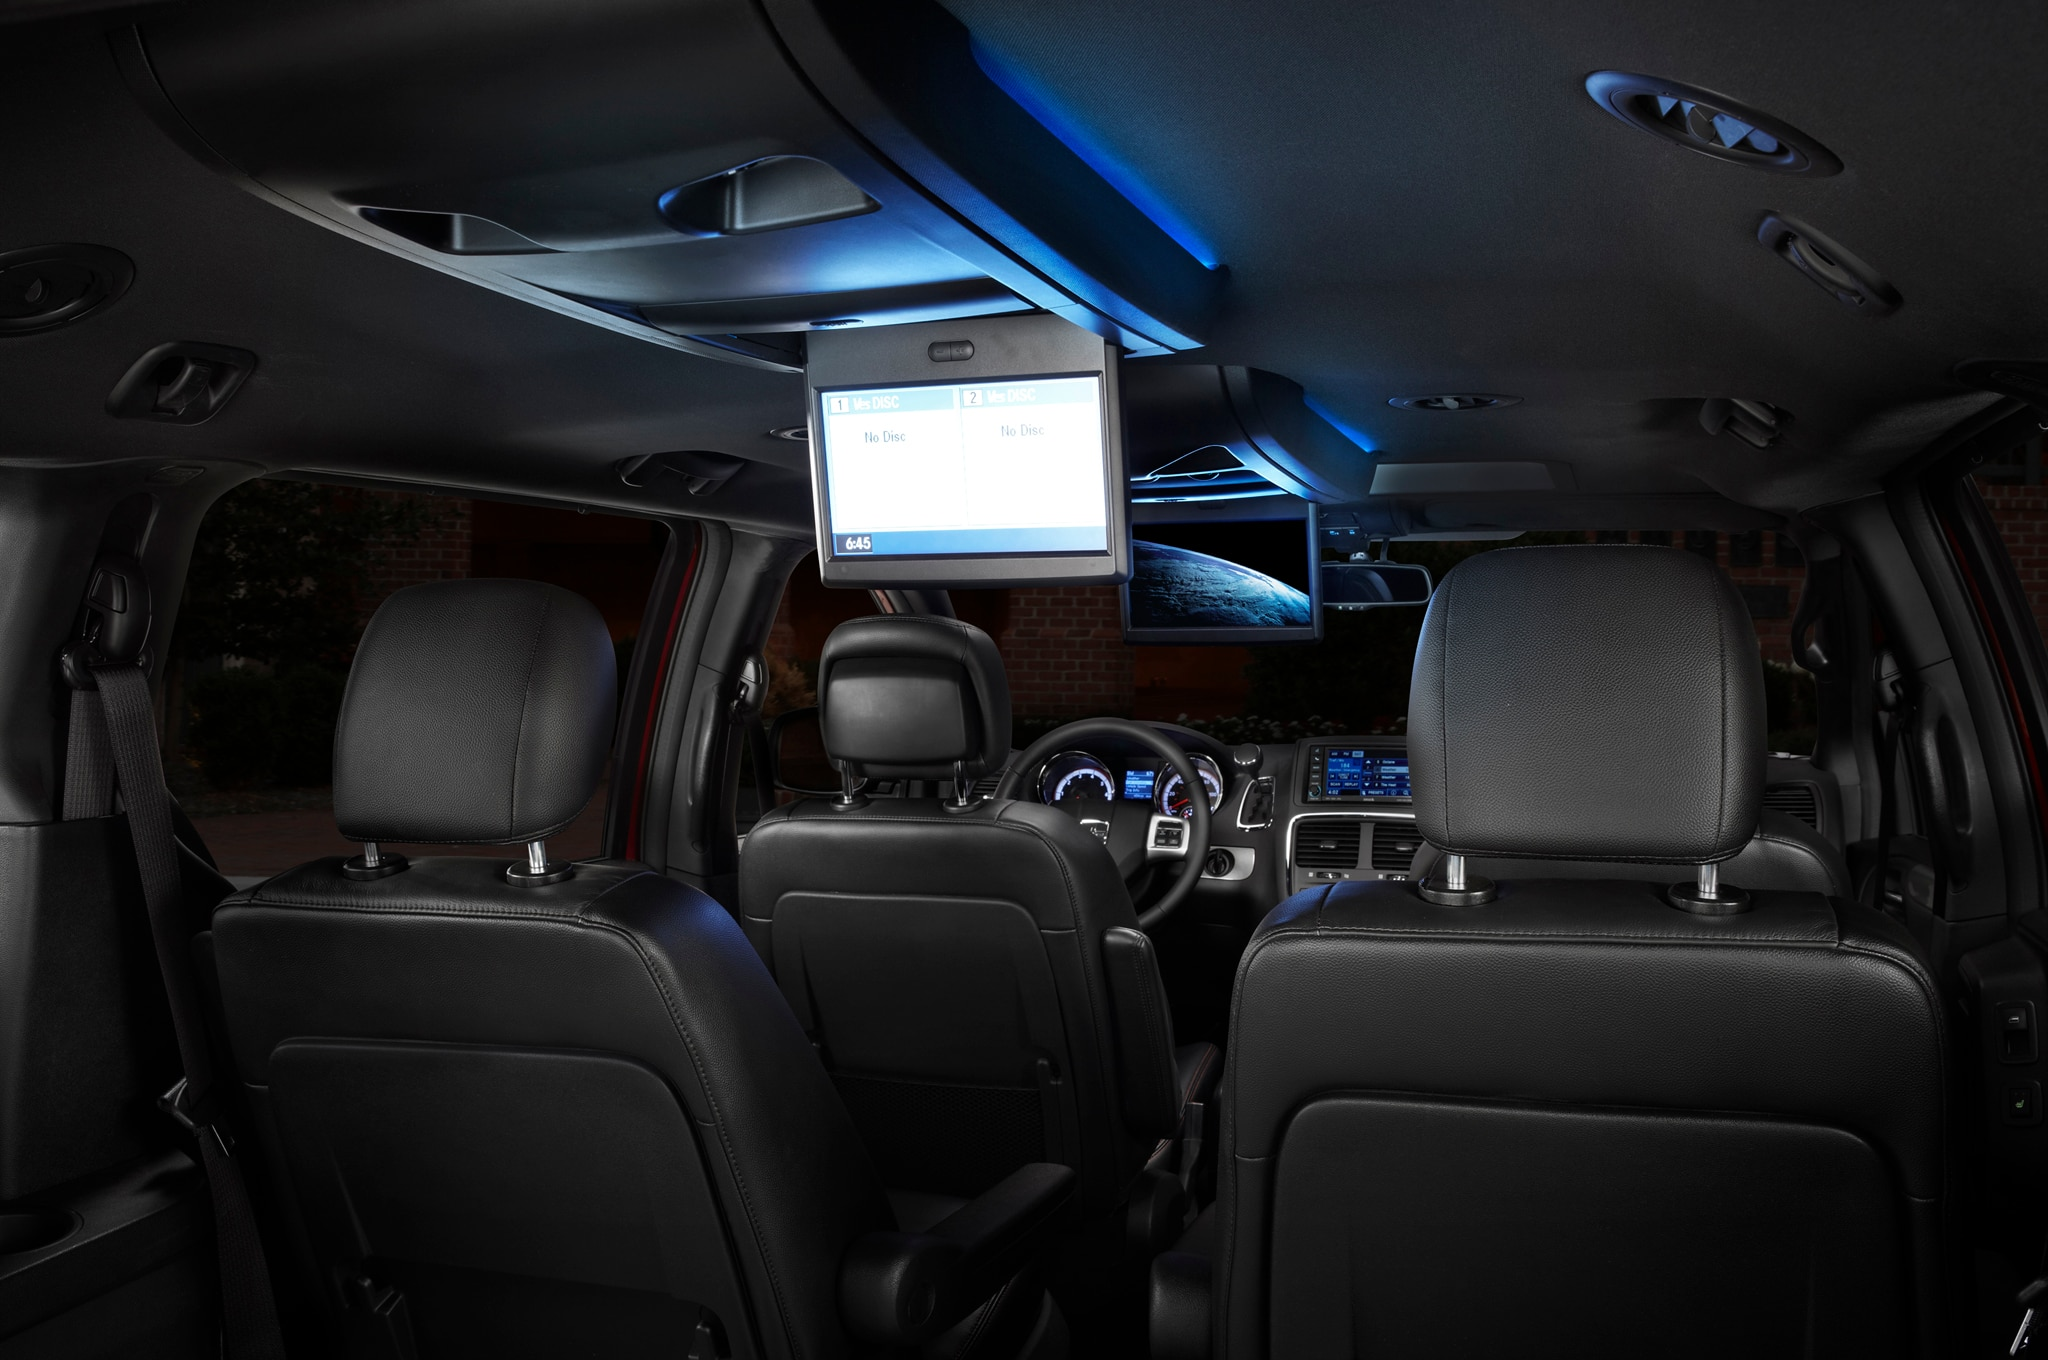 2015 dodge caravan interior - new car release date and review 2018